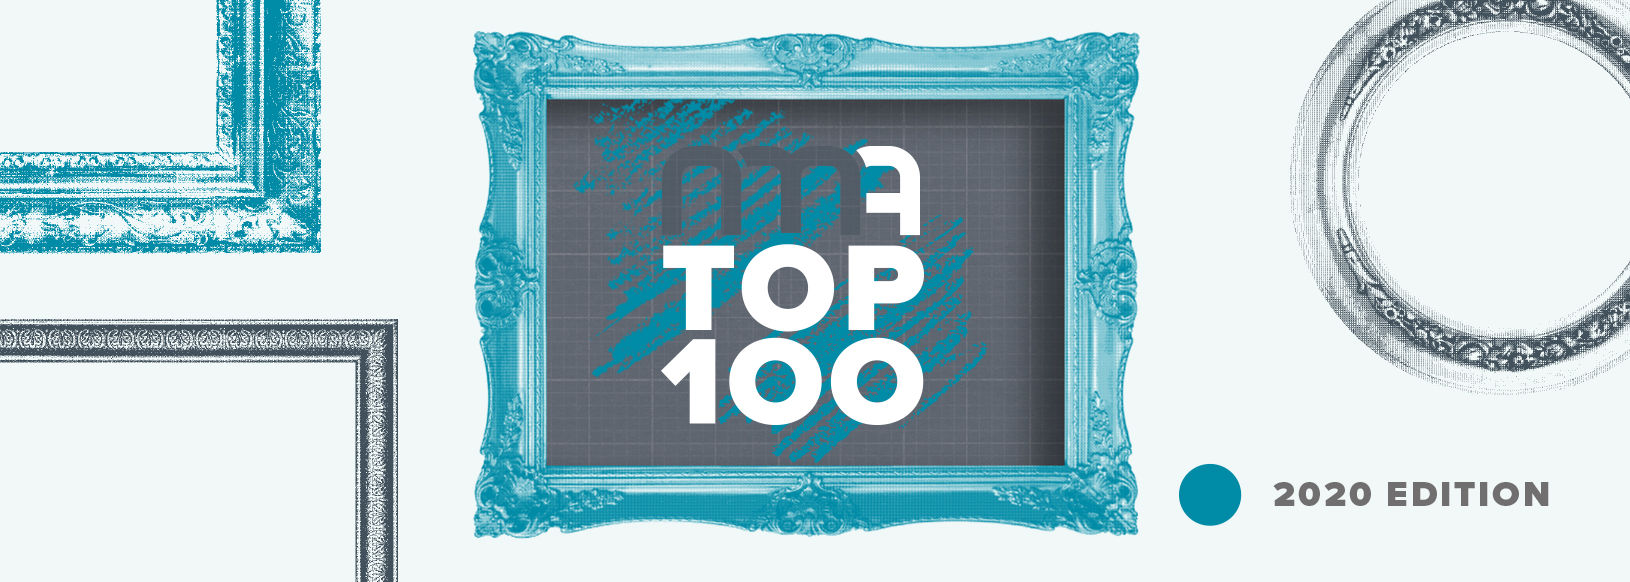 Montage Makes The 2020 New Model Adviser Top 100!